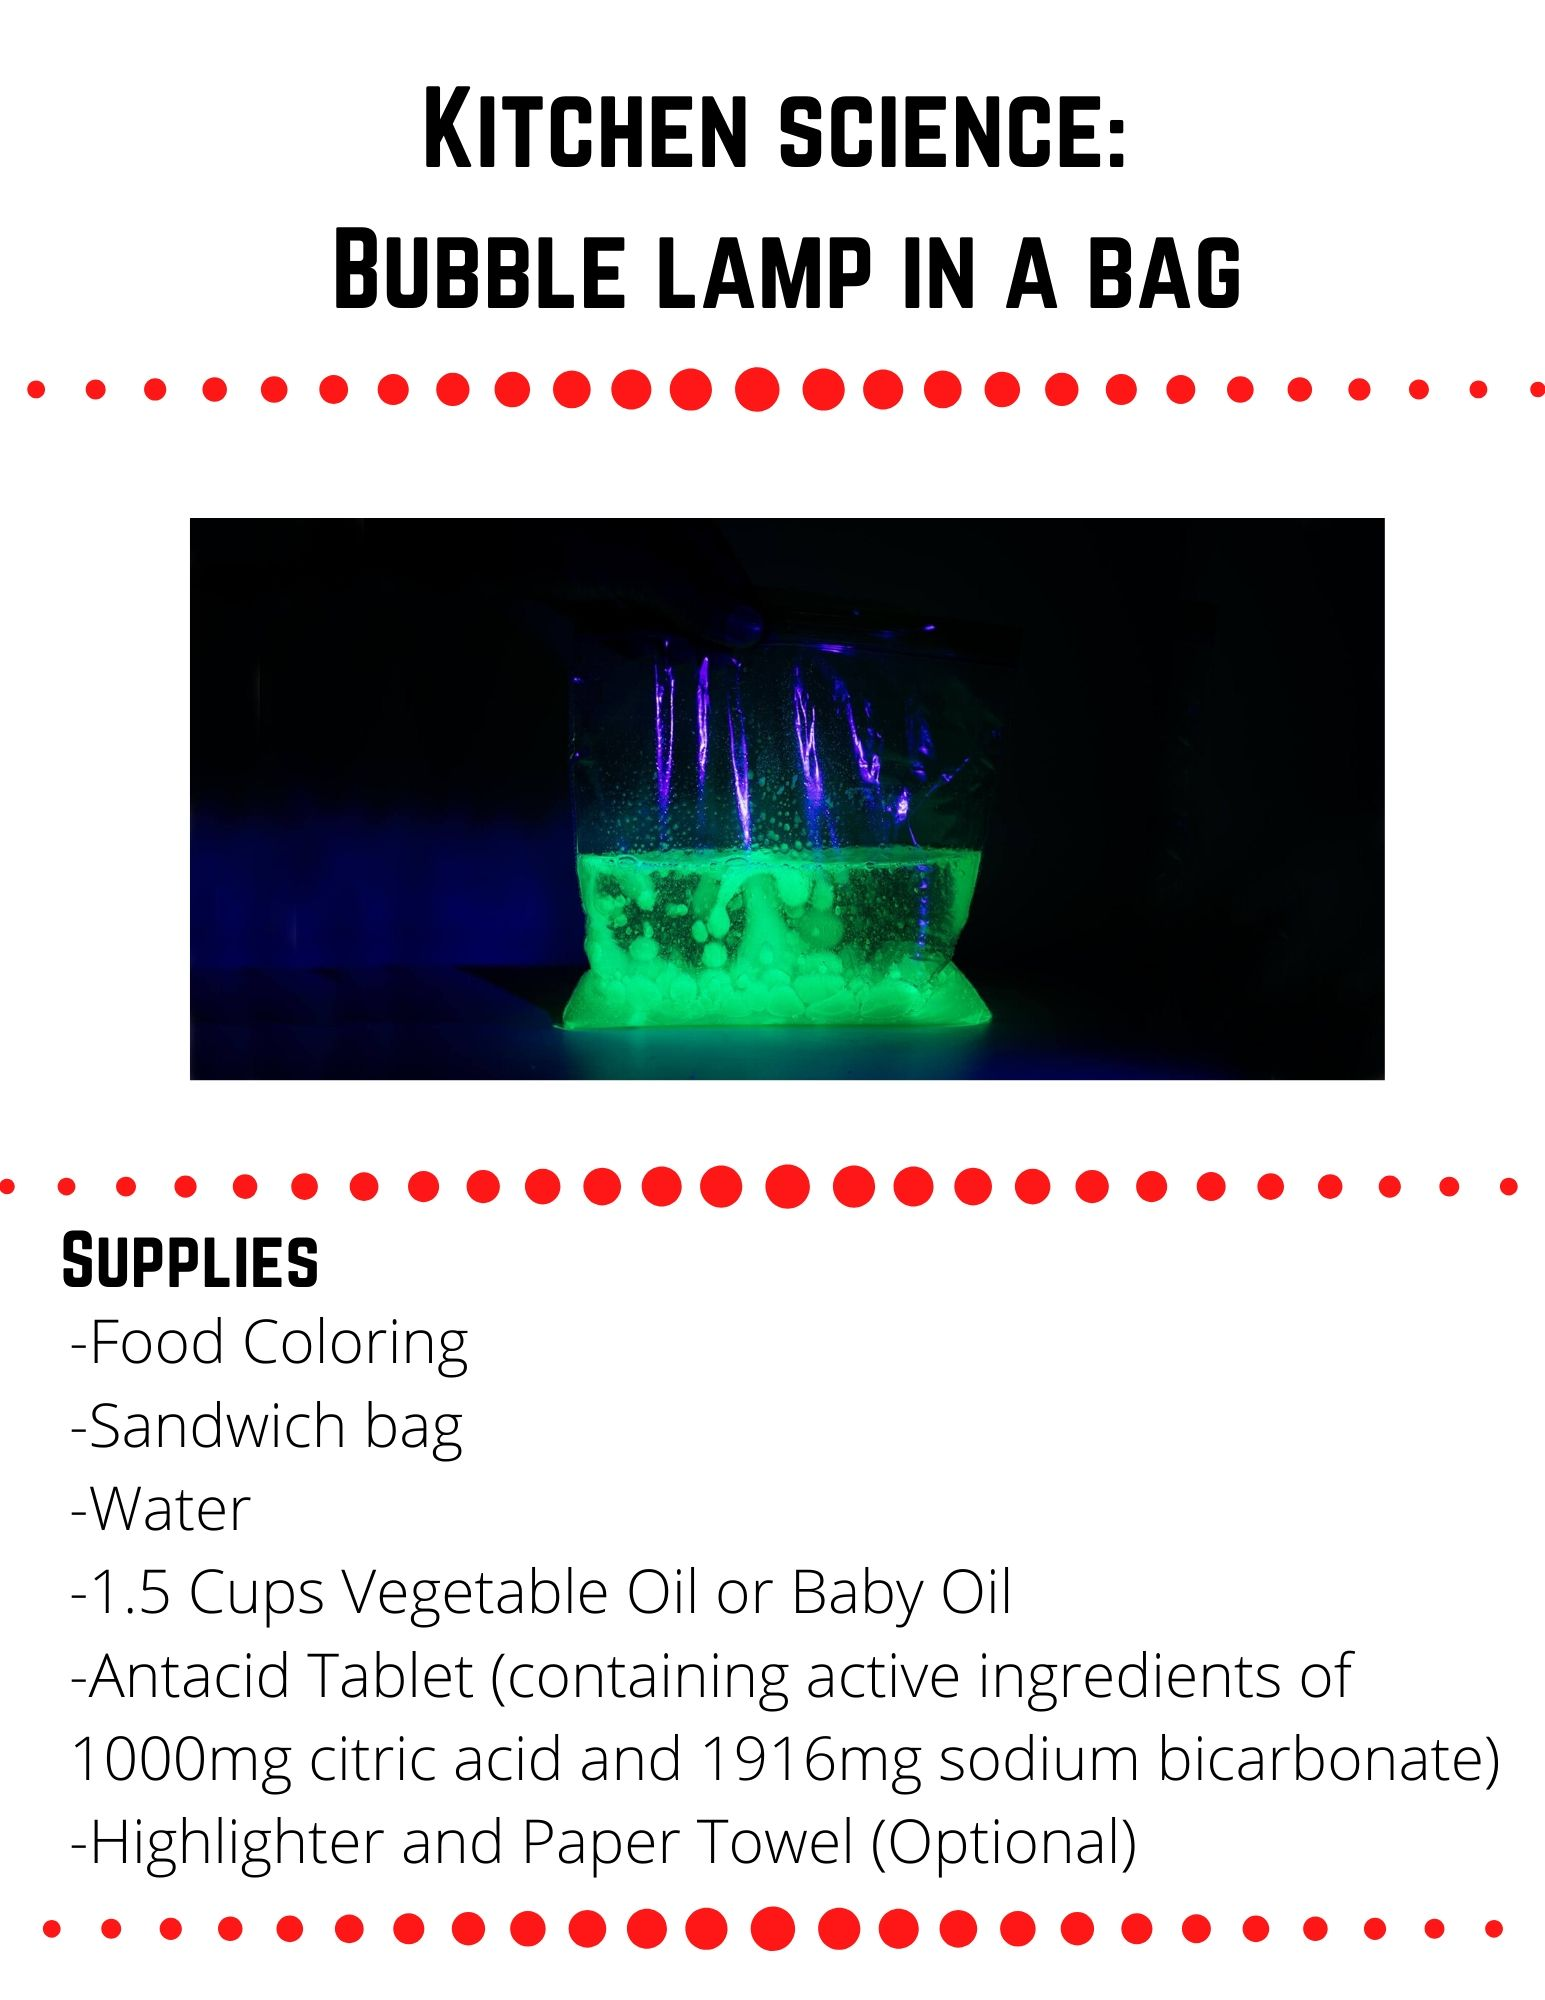 Kitchen science:  Bubble Lamp in a Bag: -Food Coloring -Sandwich bag -Water -1.5 Cups Vegetable Oil or Baby Oil -Antacid Tablet (containing active ingredients of 1000mg citric acid and 1916mg sodium bicarbonate) -Highlighter and Paper Towel (Optional).  Pour the ½ cup of water into a sandwich bag (avoid filling the bag beyond half its size). Add two to three drops of food coloring and mix together. Pour 1½ cups of oil into the bag (avoid filling the bag beyond half its size) and firmly seal the bag. Observe what happens to the oil and the water. Which substance floats to the top? Break one antacid tablet into pieces (only use one tablet at a time). Drop the pieces into the bag. You made a bubble lamp! As the bubbles rise, they give a temporary lift to the water. As the bubbles  burst at the surface, the water falls back down. To create a glowing bubble lamp, make fluorescent water with a highlighter. Use the highlighter (yellow  or green work best) to color a paper towel sheet until it's completely covered. Soak the colored sheet in a ½ cup of water for 15 seconds, until all the color has been absorbed by the water and the towel is almost inkless.  Remove and wring out the paper towel to get as much of the ink into the water as you can. Now repeat Steps 1-3with the highlighter water in place of the food coloring water.